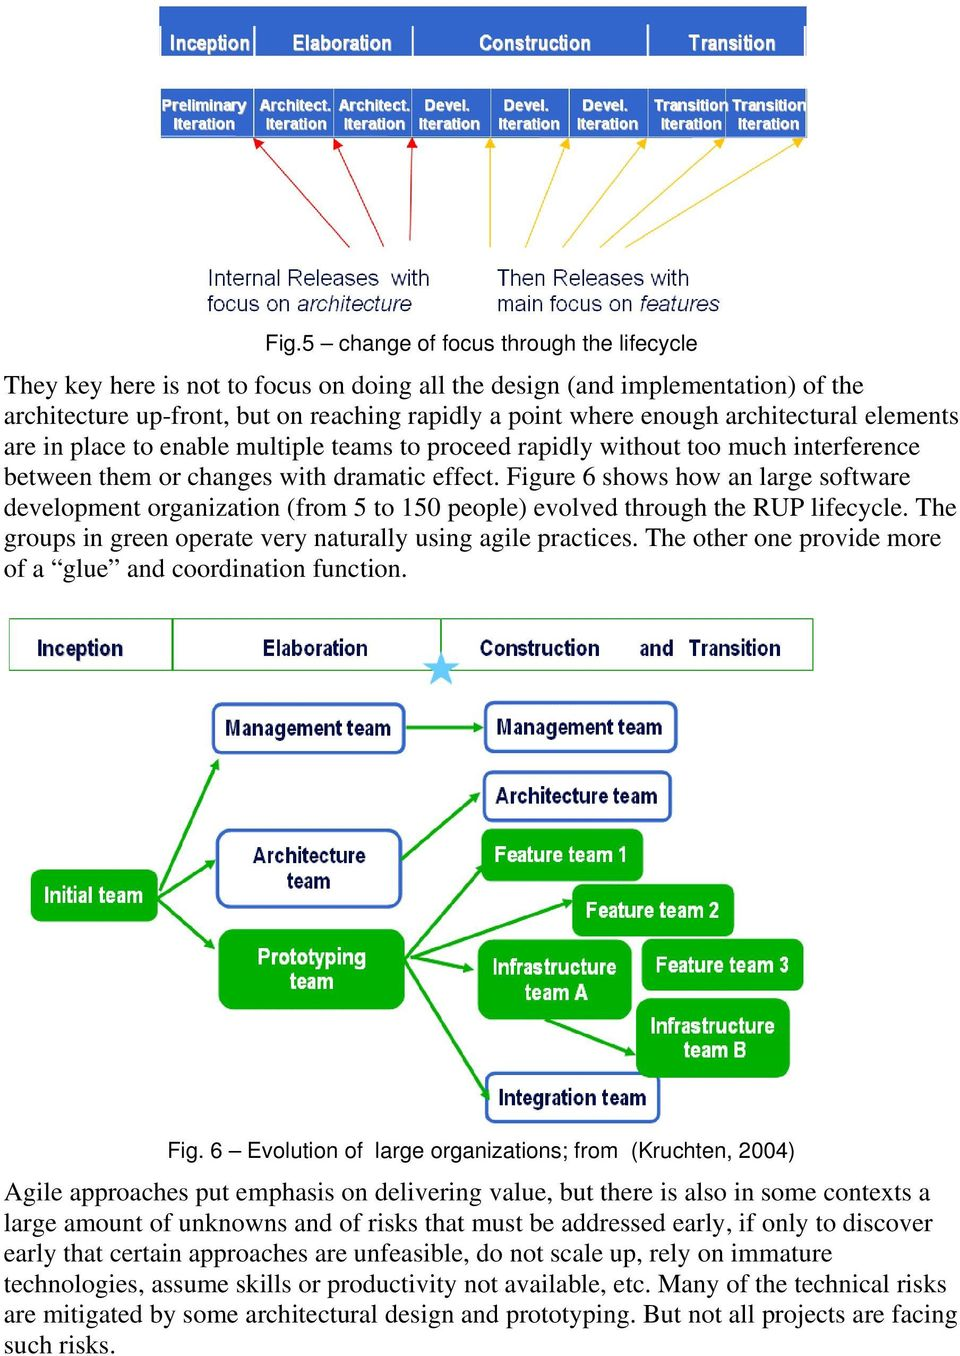 Figure 6 shows how an large software development organization (from 5 to 150 people) evolved through the RUP lifecycle. The groups in green operate very naturally using agile practices.